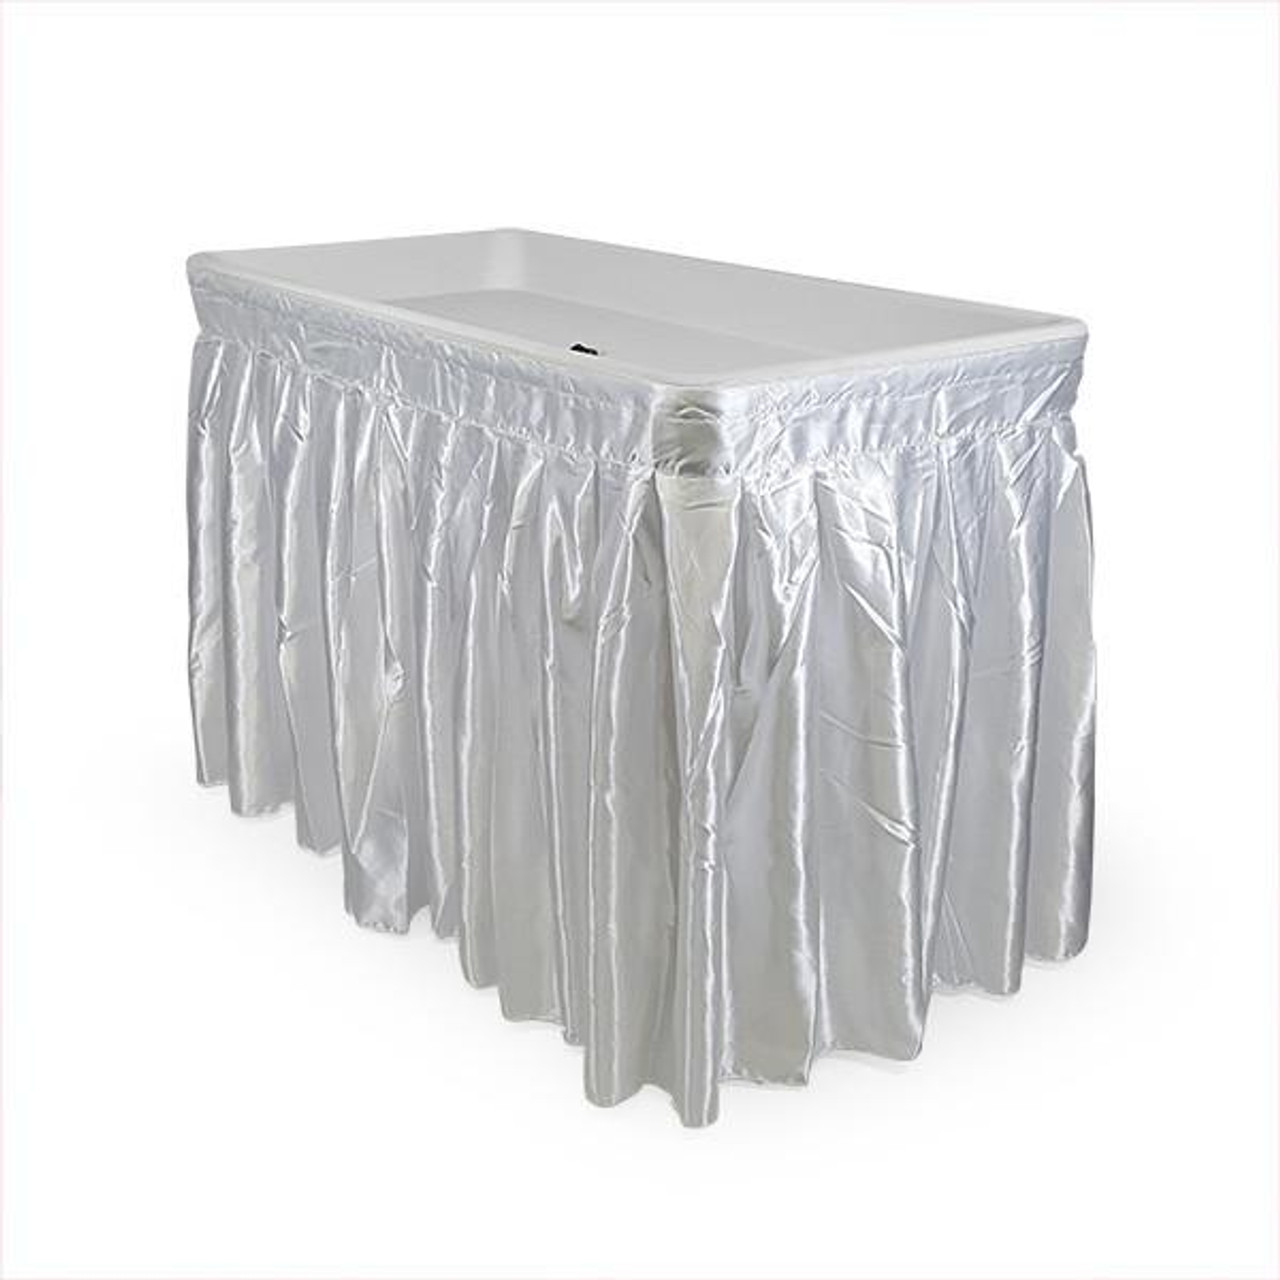 ... 4 Foot Cooler Ice Folding Table W/ Skirt White ...